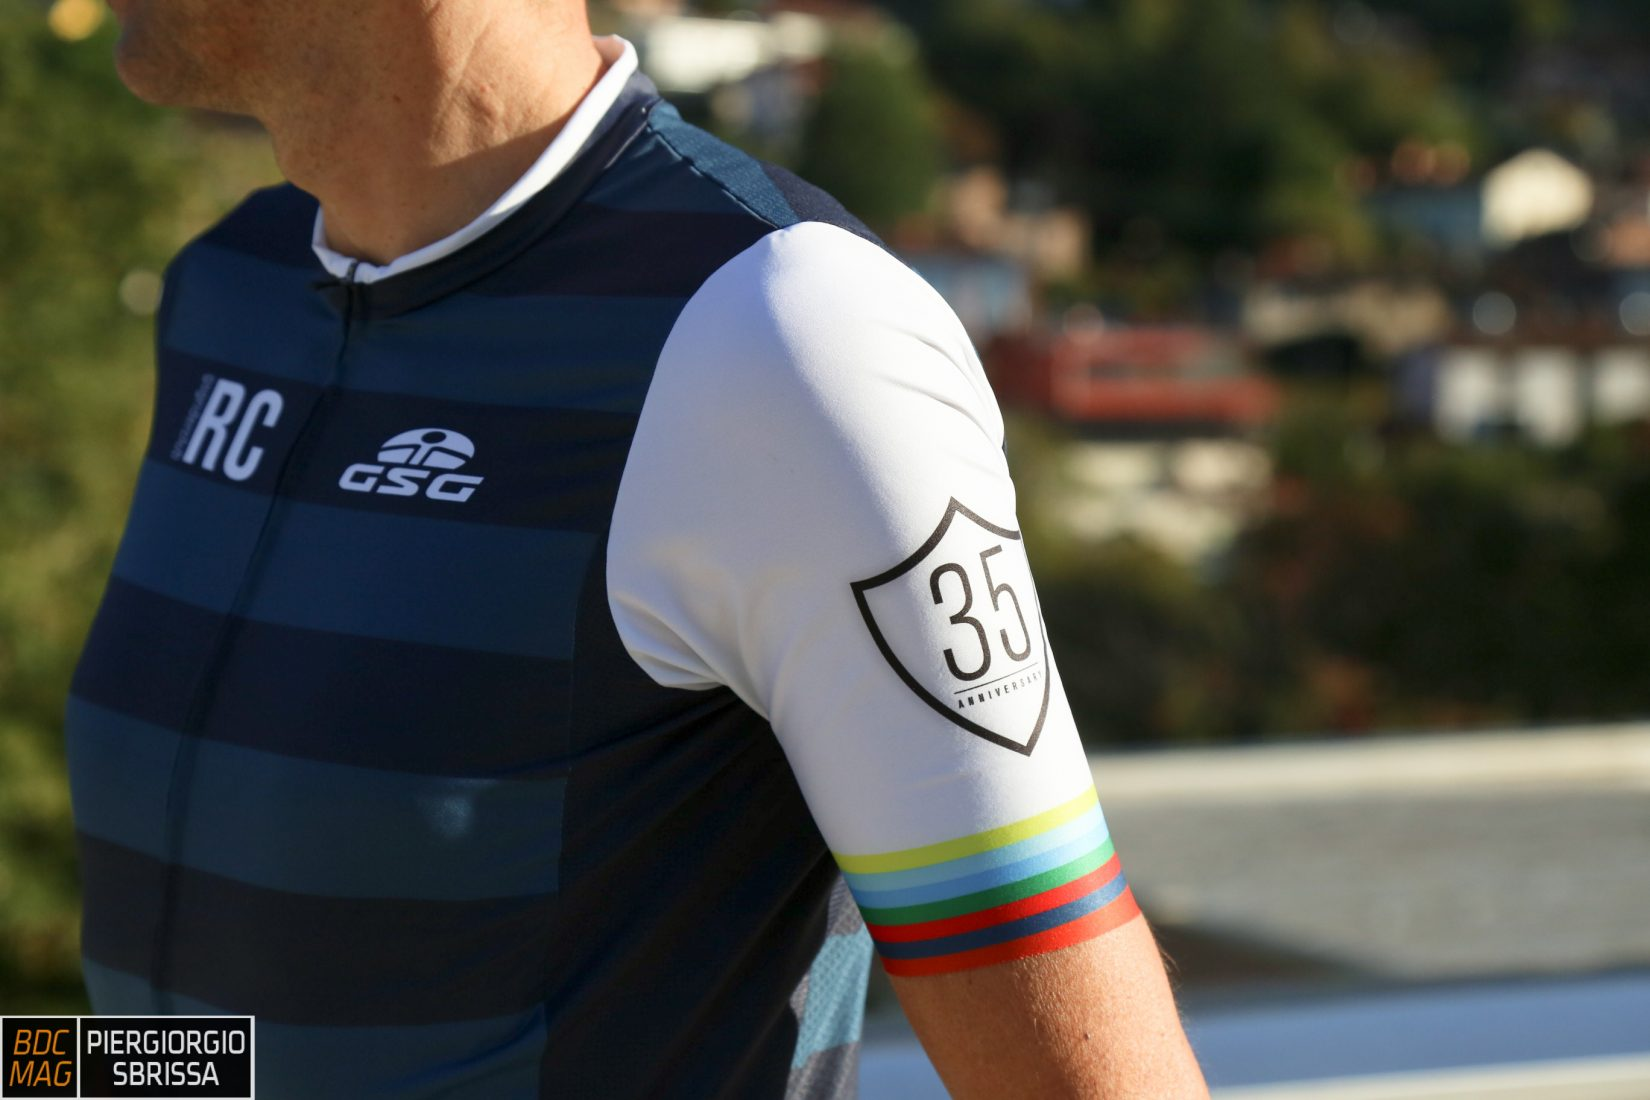 Test completo GSG Olympic-VIS